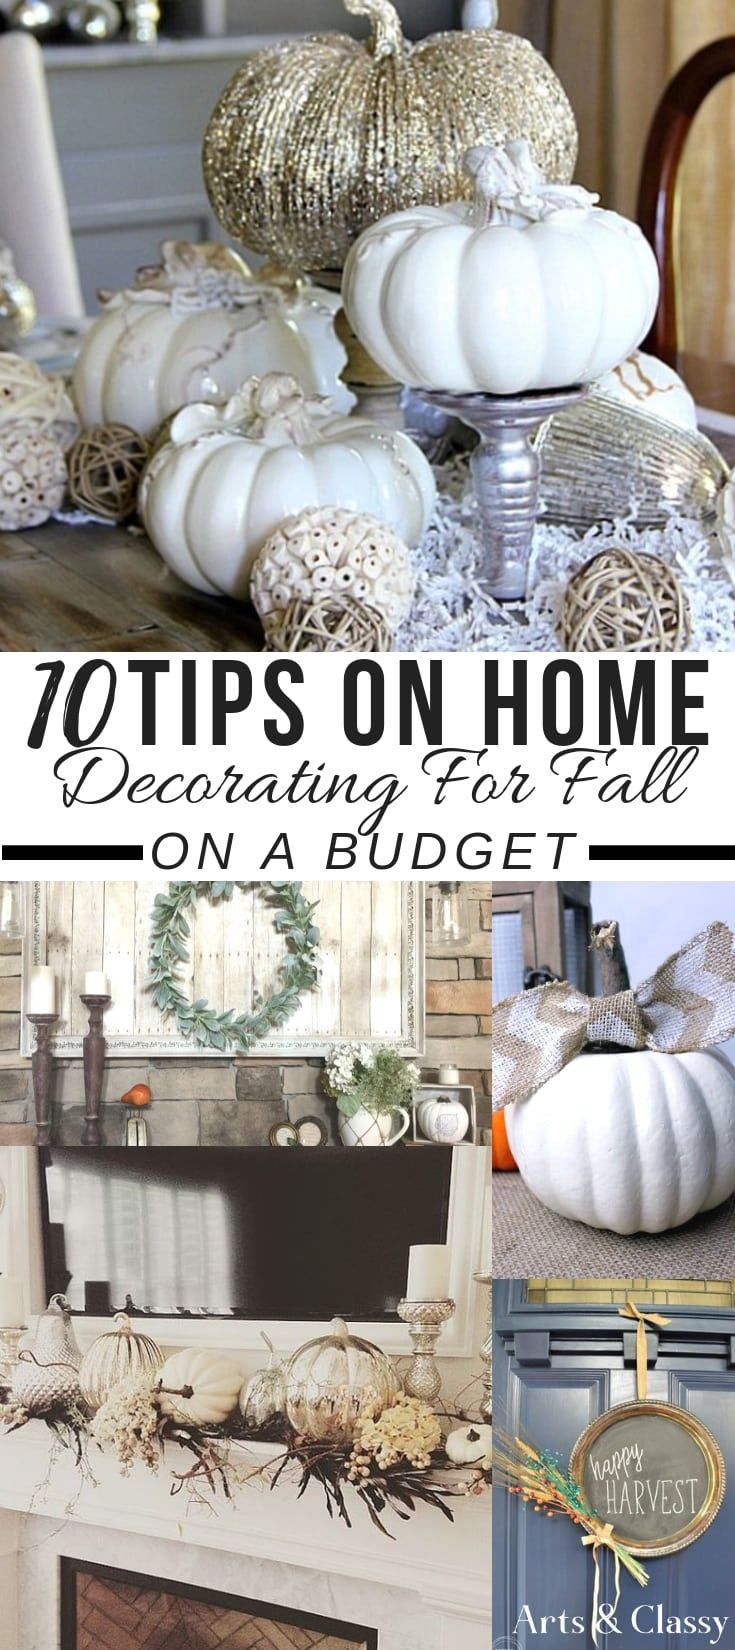 10 Home Decorating Ideas for Fall + FREE PRINTABLES | Arts and Classy